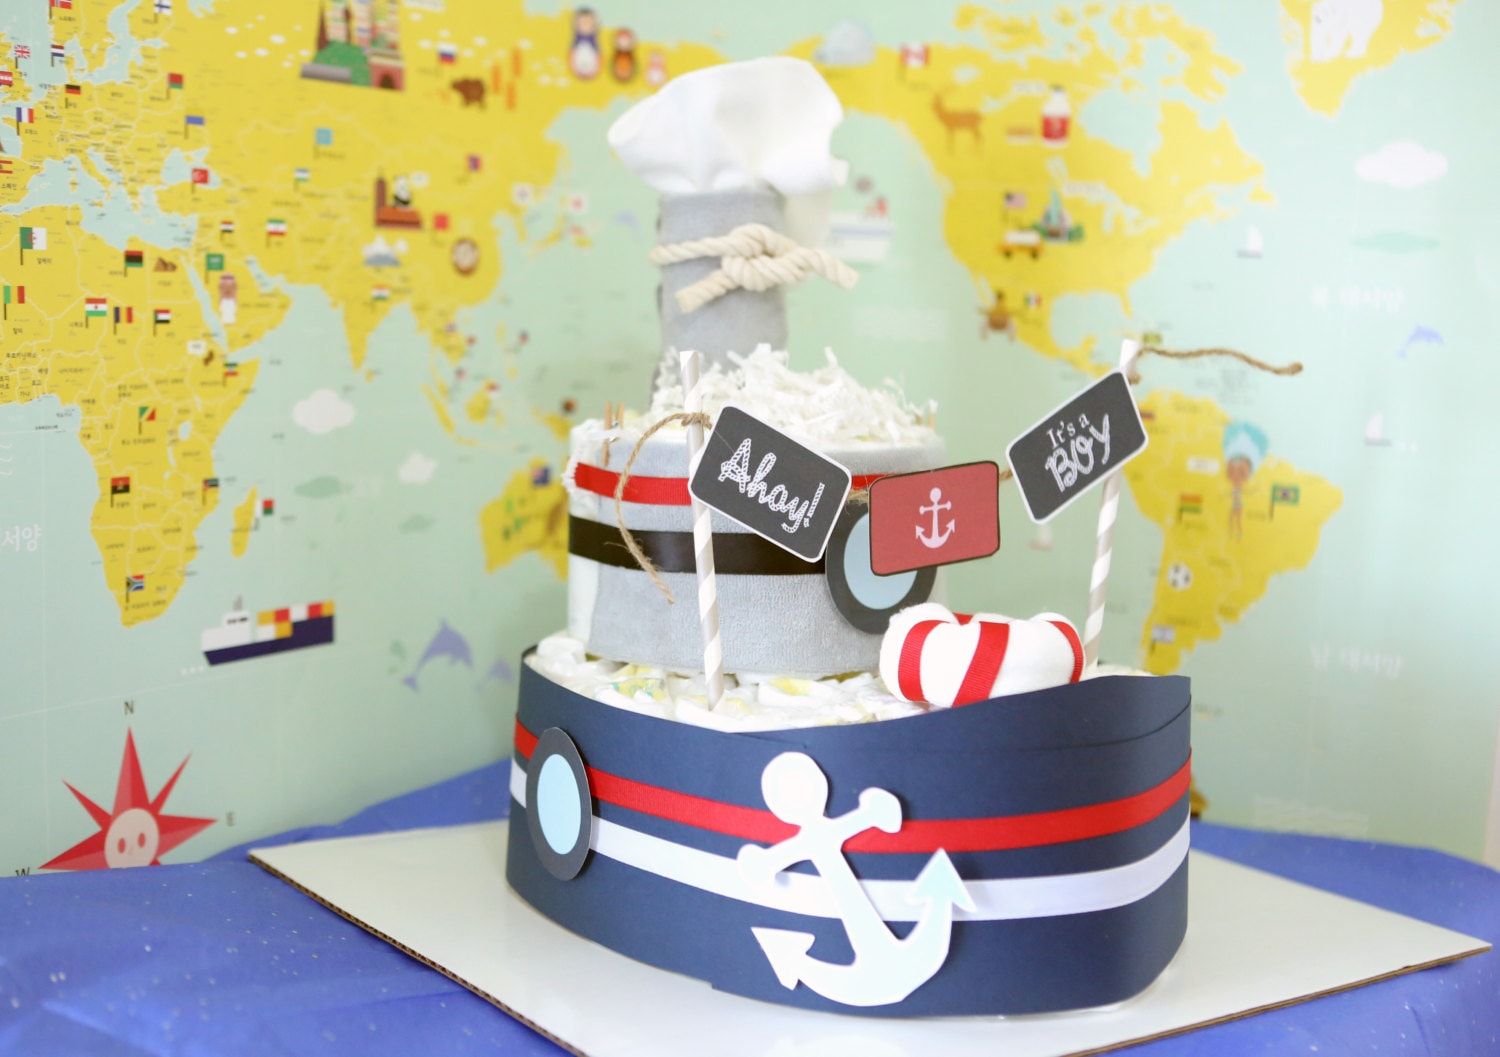 Nautical Boat Diaper Cake For Baby Boy Shower Centerpieces Decorations New Mom Unique Gifts Ship Boys Room Nursery Decor